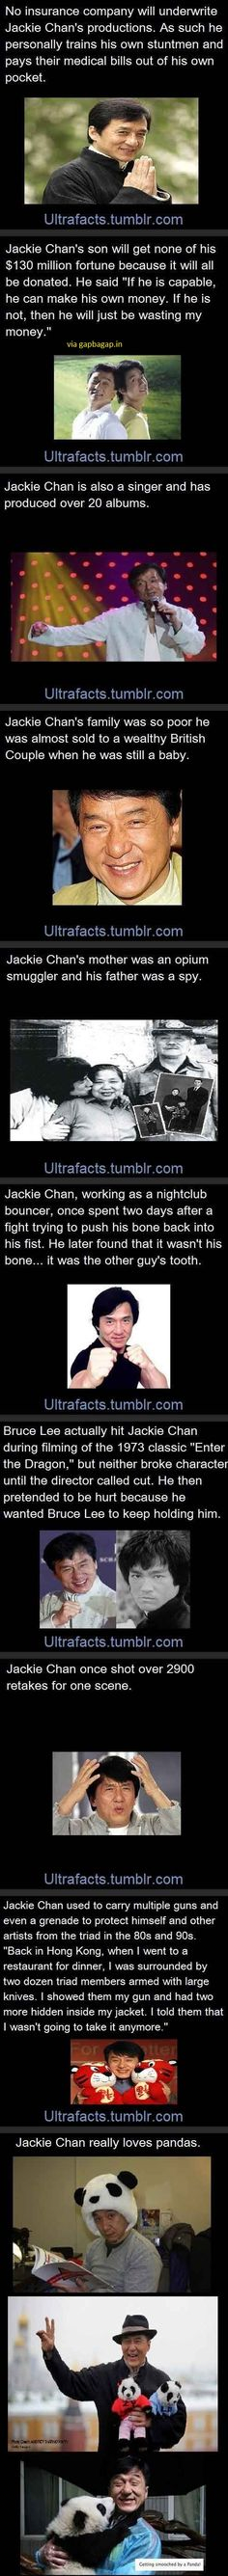 The Jackie Chan's Life Story